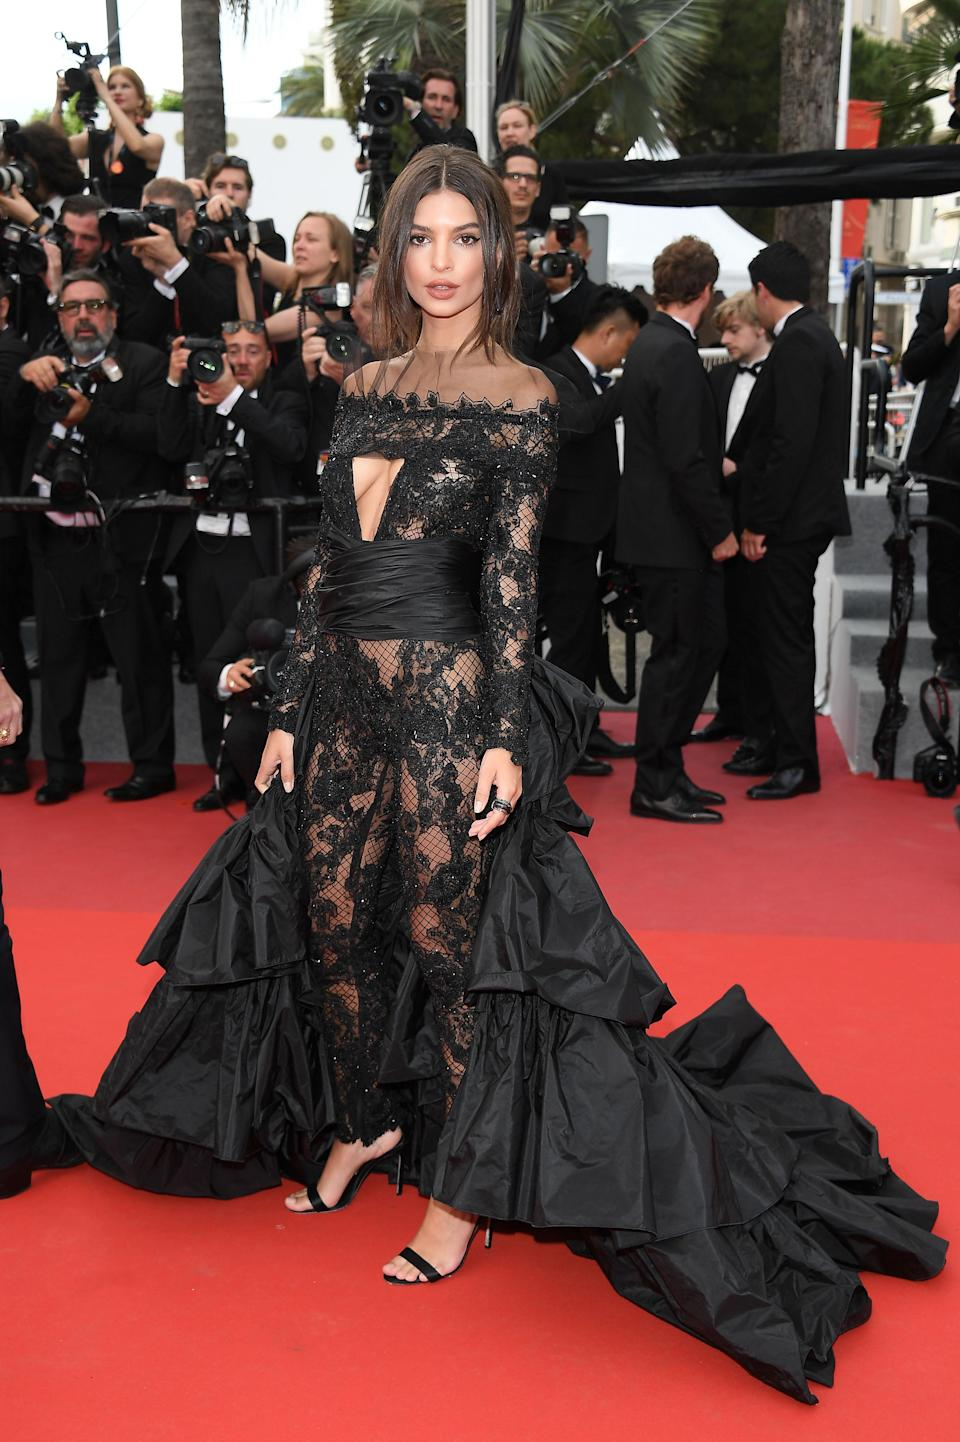 <p>At the Cannes Film Festival, Emily demanded attention in a lace bodysuit and enormous train, custom made by Peter Dundas. This would surely look like Halloween-gone-wrong on anyone else.<br>[Photo: Getty] </p>